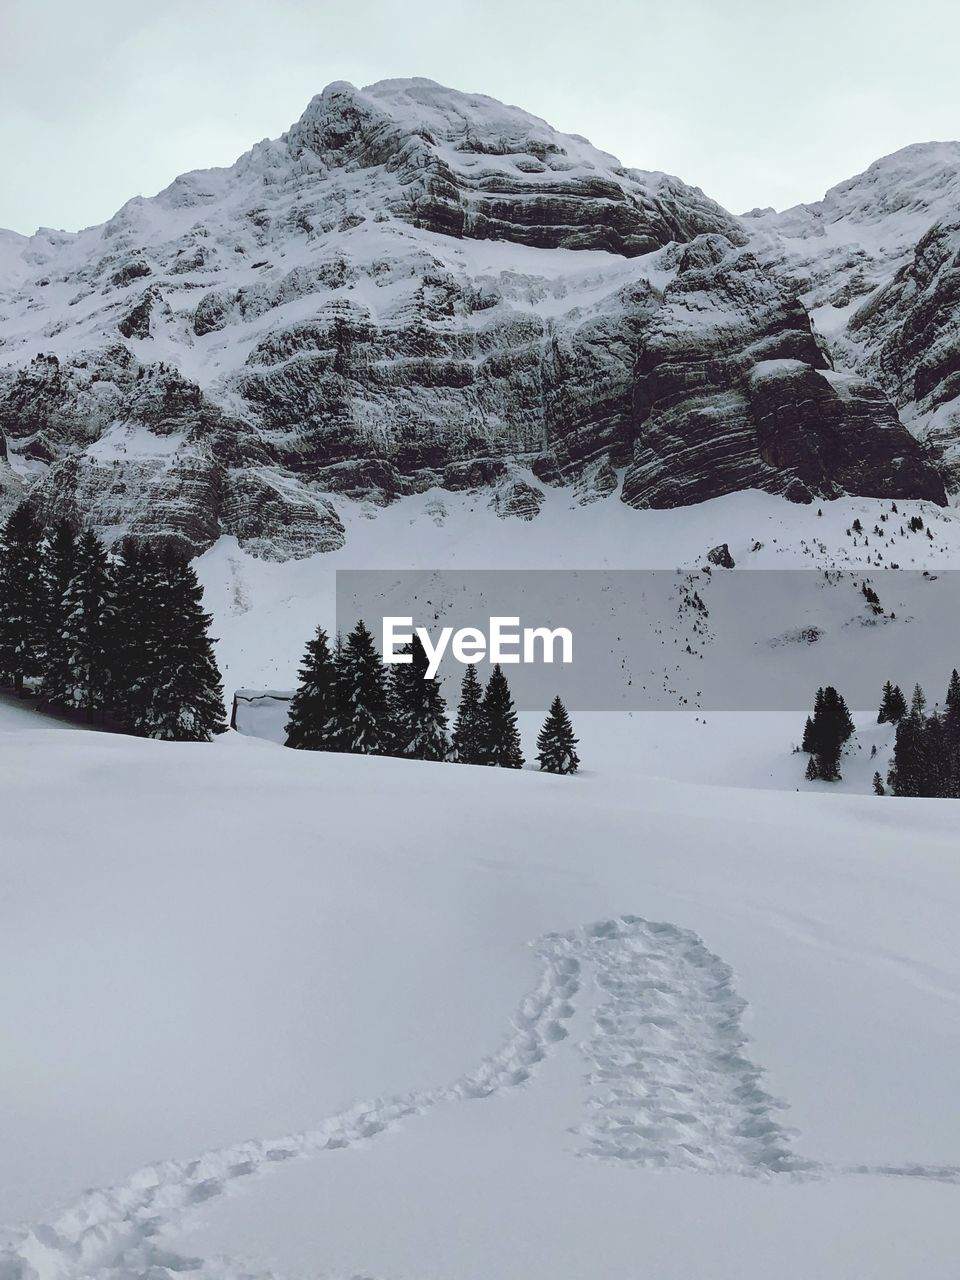 snow, winter, cold temperature, mountain, scenics - nature, beauty in nature, tree, white color, plant, tranquility, covering, tranquil scene, snowcapped mountain, sky, nature, environment, no people, day, non-urban scene, mountain range, extreme weather, mountain peak, powder snow